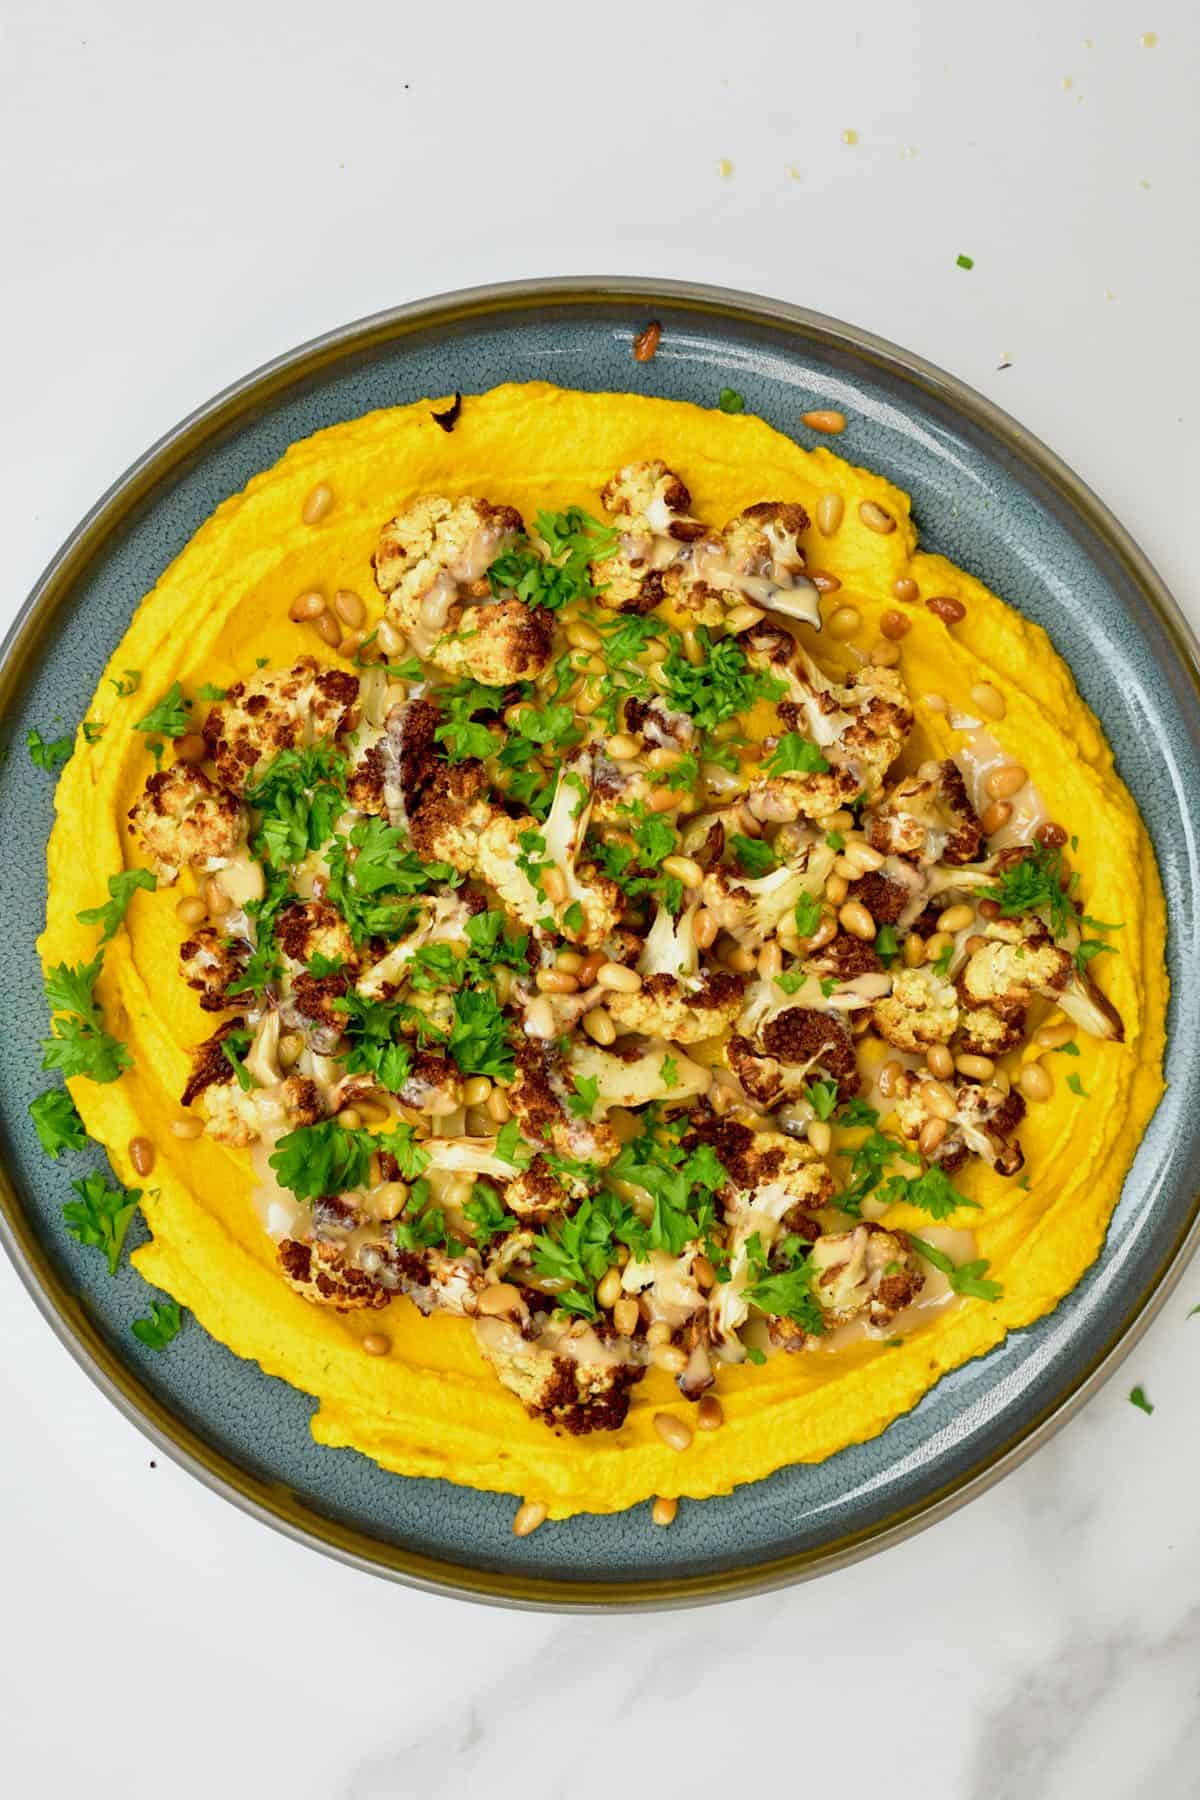 Turmeric hummus topped with cauliflower and parsley